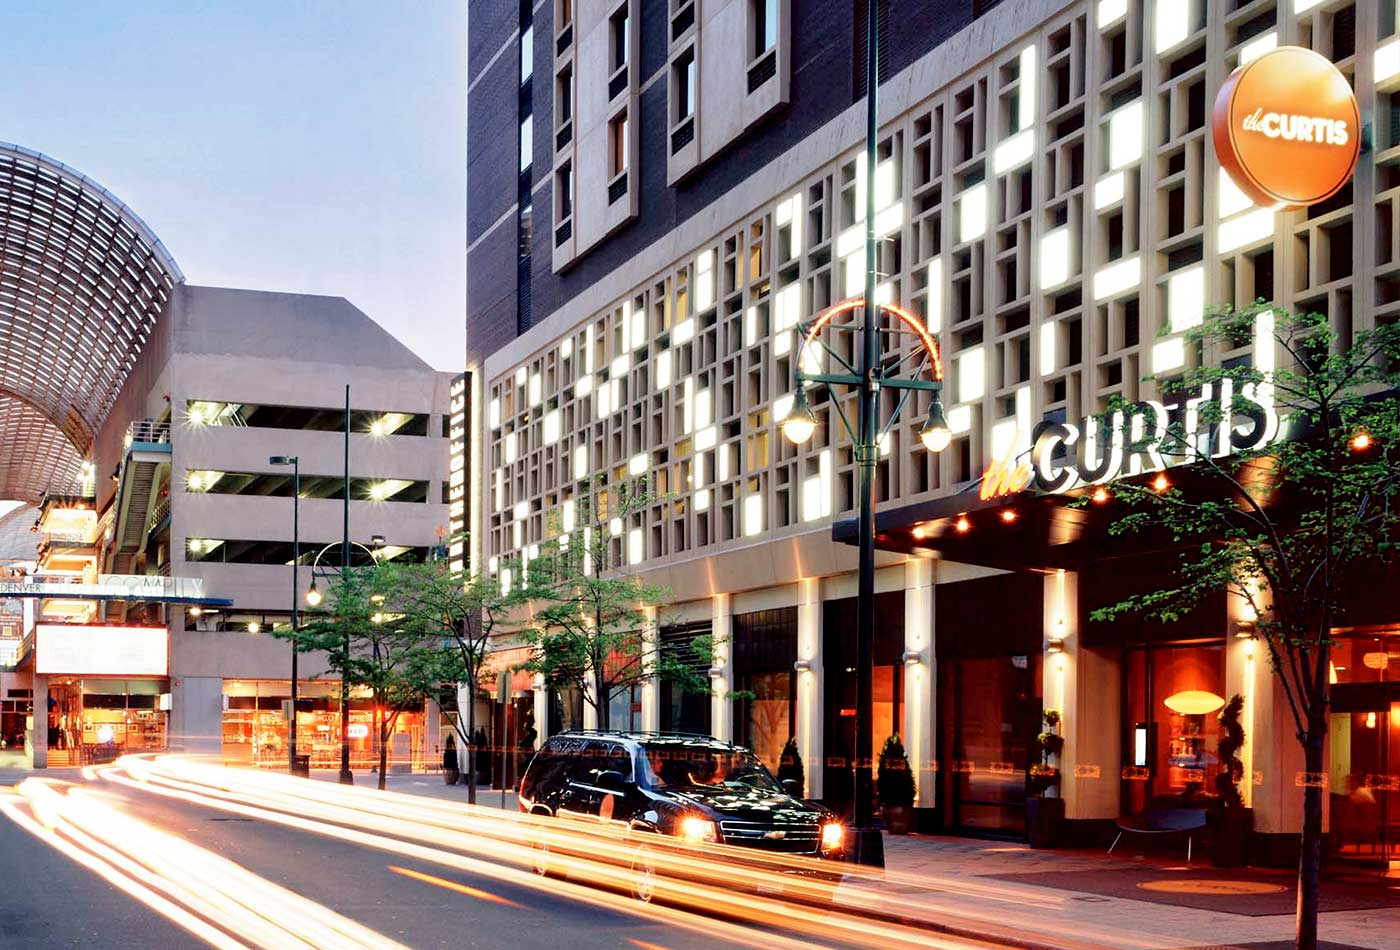 The Curtis, DoubleTree by Hilton Hotel